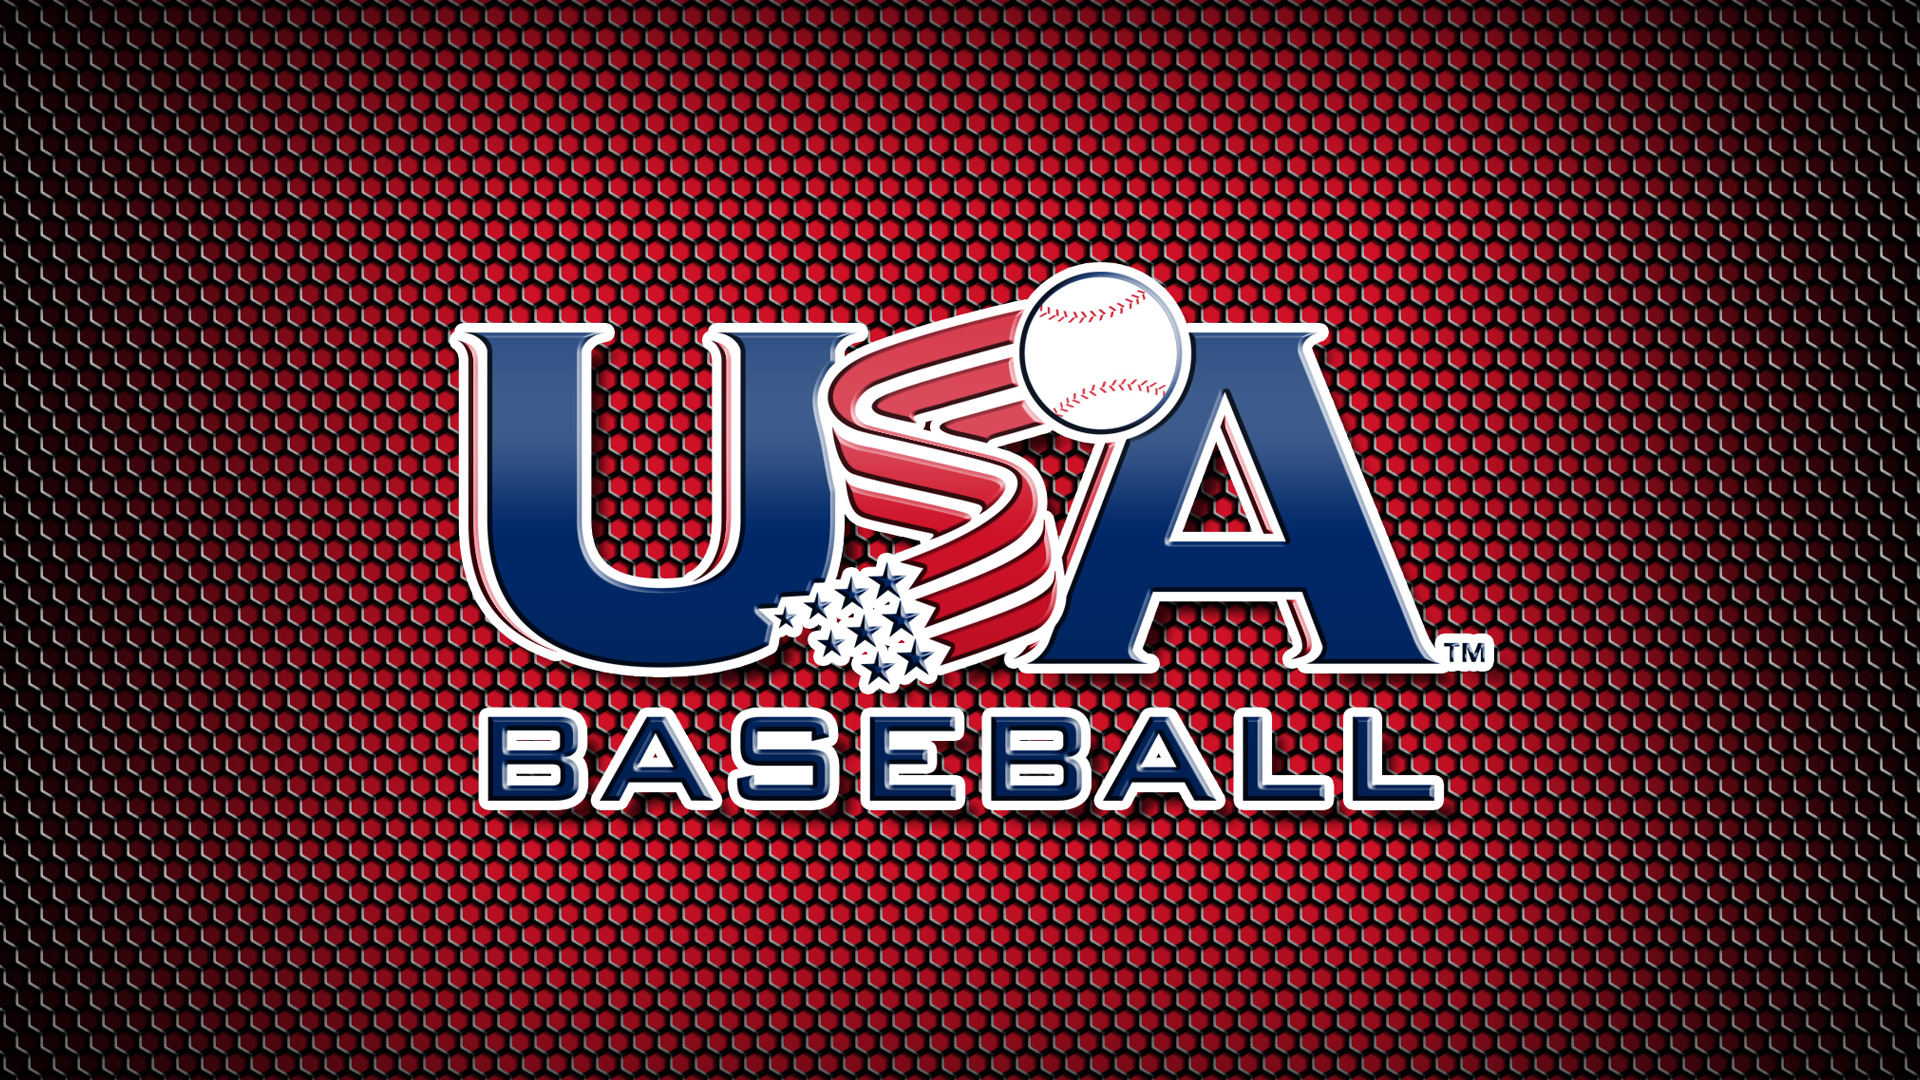 USA Baseball Bat Standard for 2018